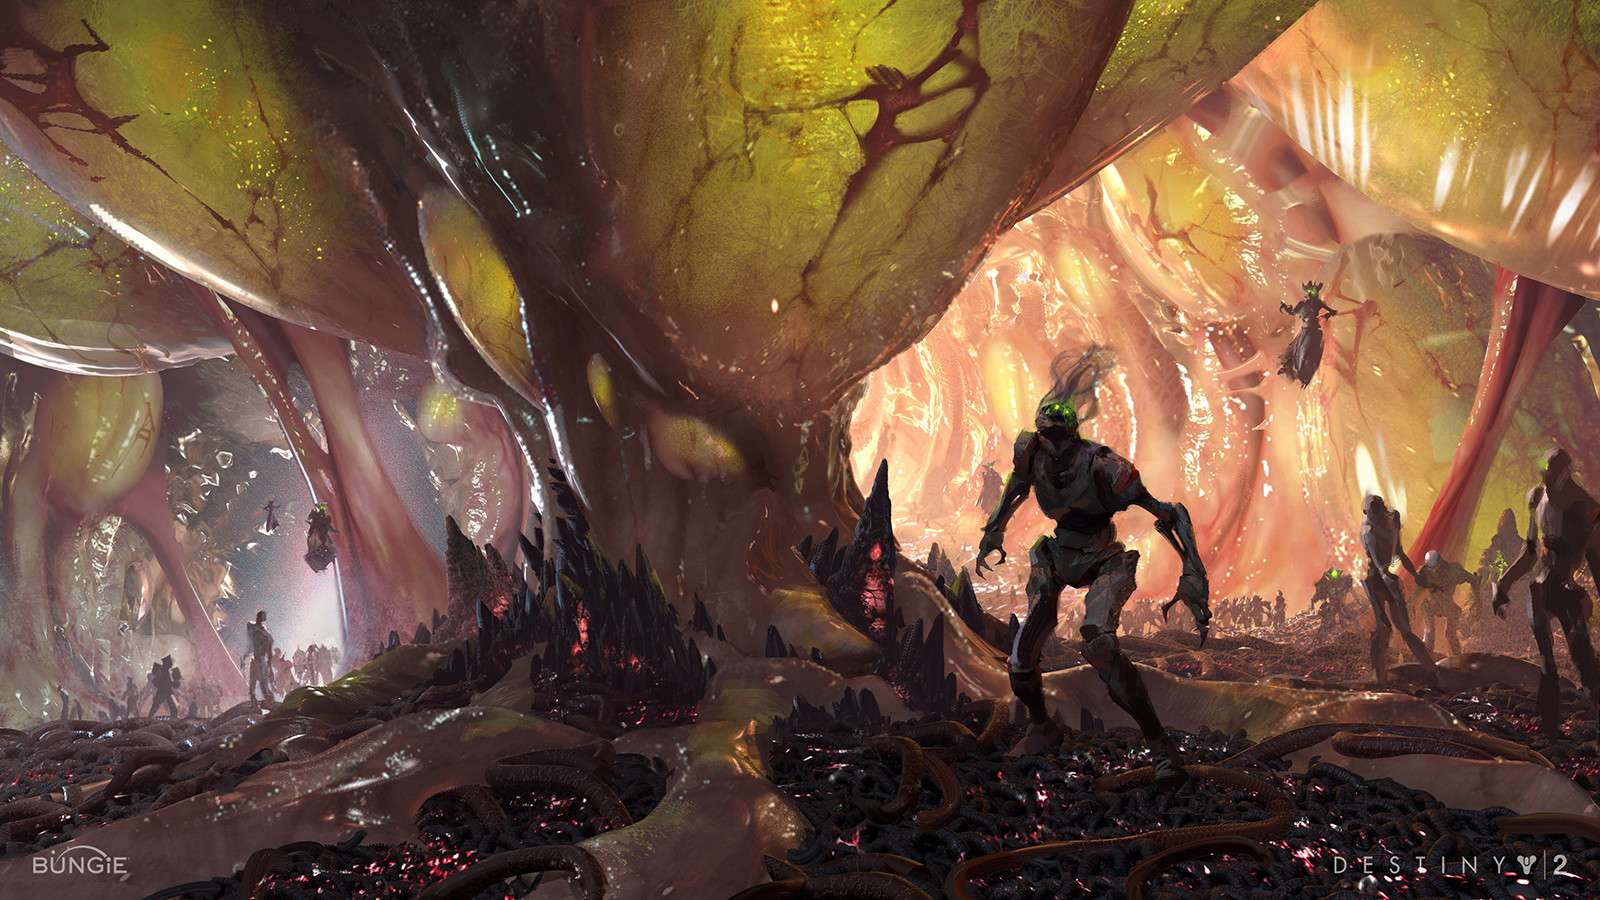 ArtStation - Hive in Arcology in Destiny 2, Sung Choi